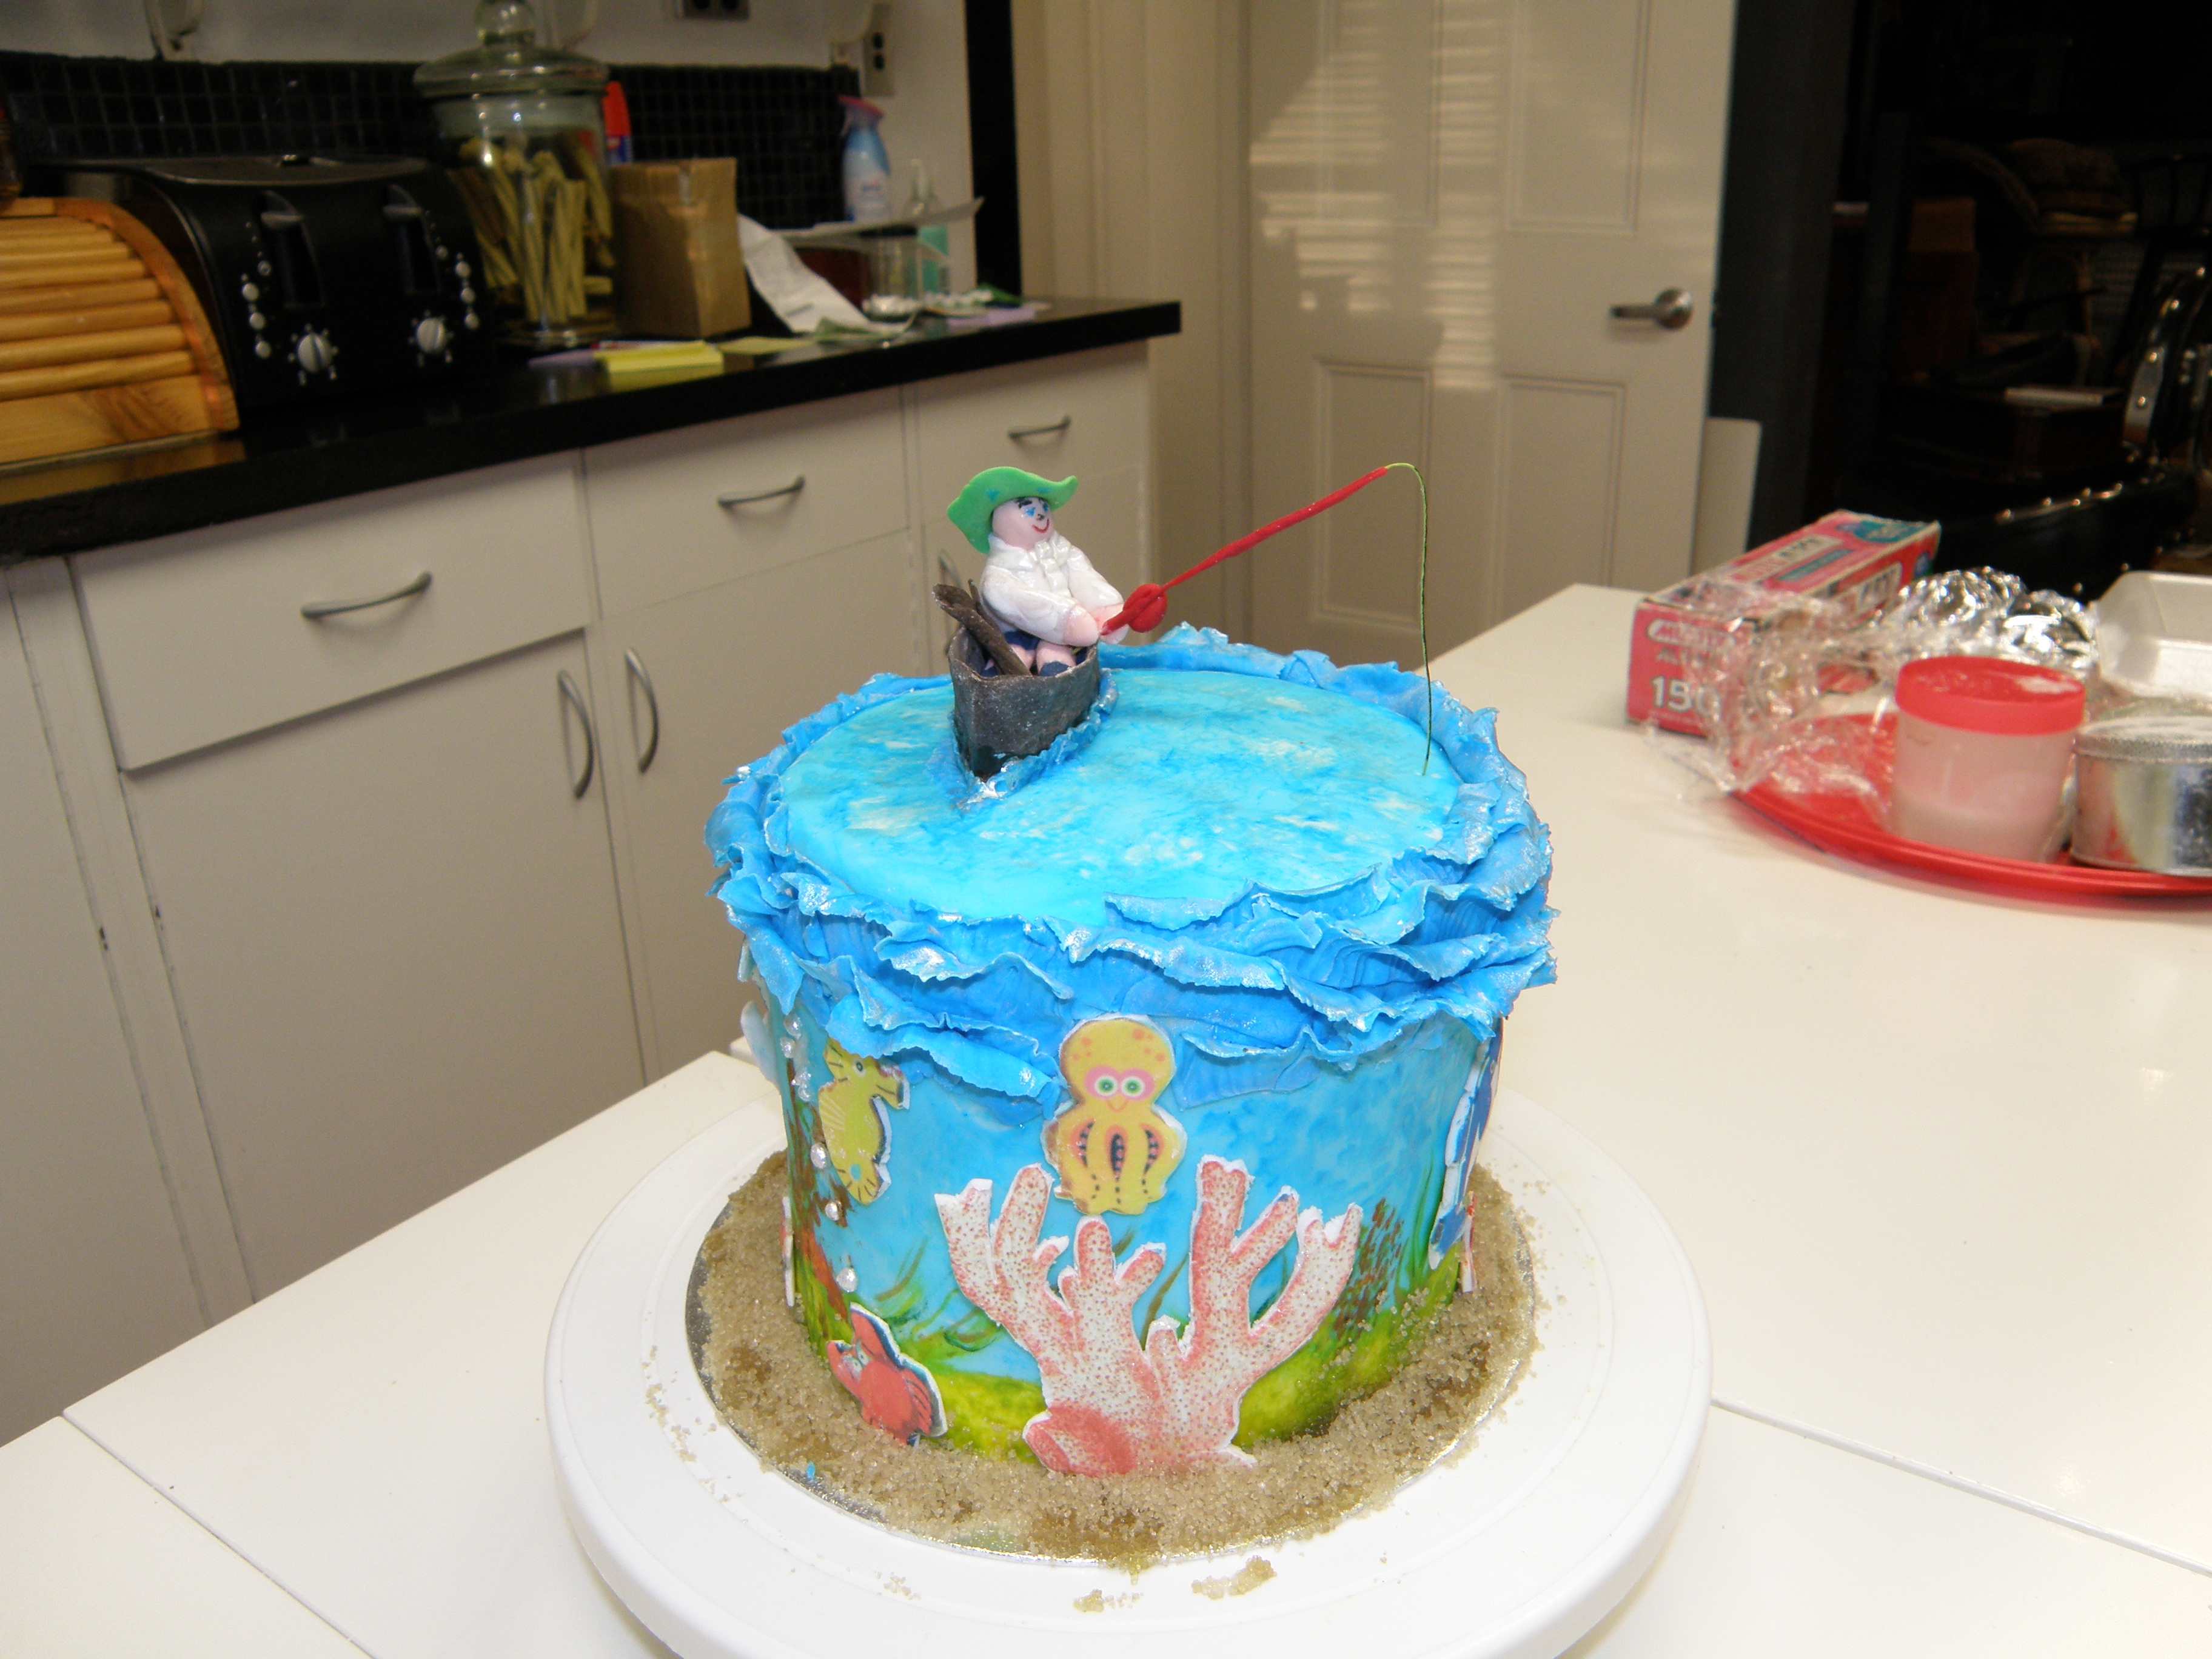 Images Of Birthday Cakes For 8 Year Old Boy : Cake For 8 Year Old Boy - CakeCentral.com